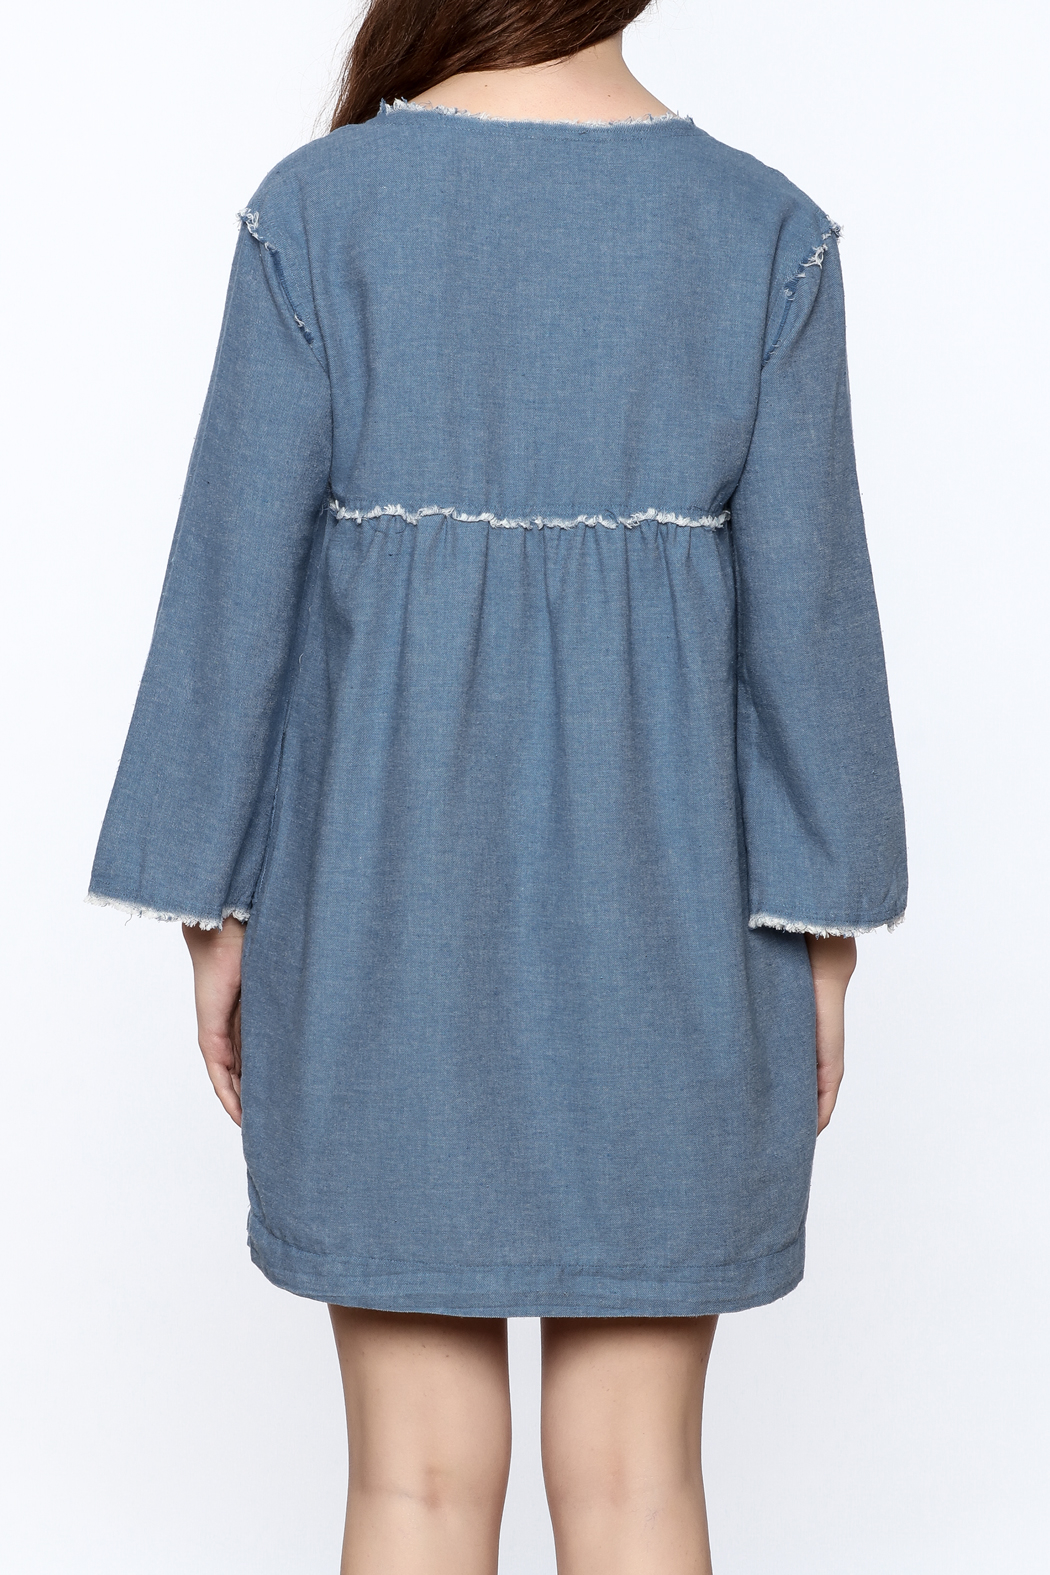 Ellison Frayed Denim Dress - Back Cropped Image